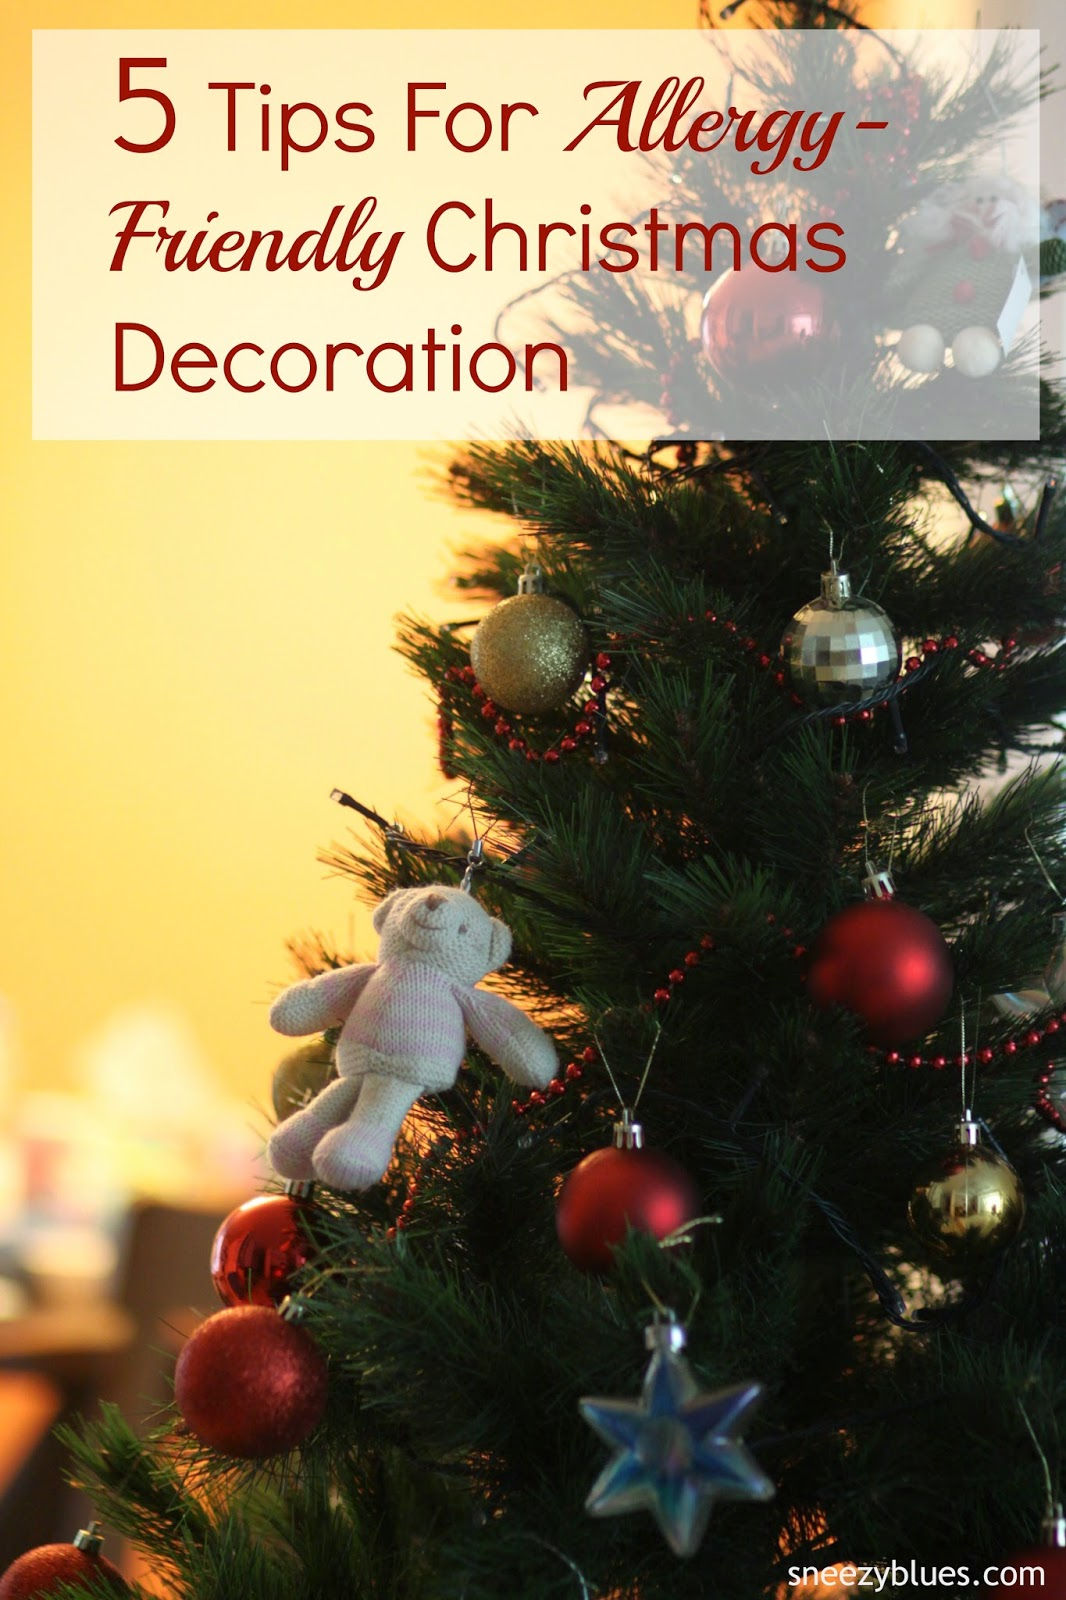 Decorate the christmas tree fa la la la - Tis The Season To Be Jolly Fa La La La La La La La La I Am Sure Many Of Us Are Basking In The Christmas Mood With Christmas Shopping And Decoration At